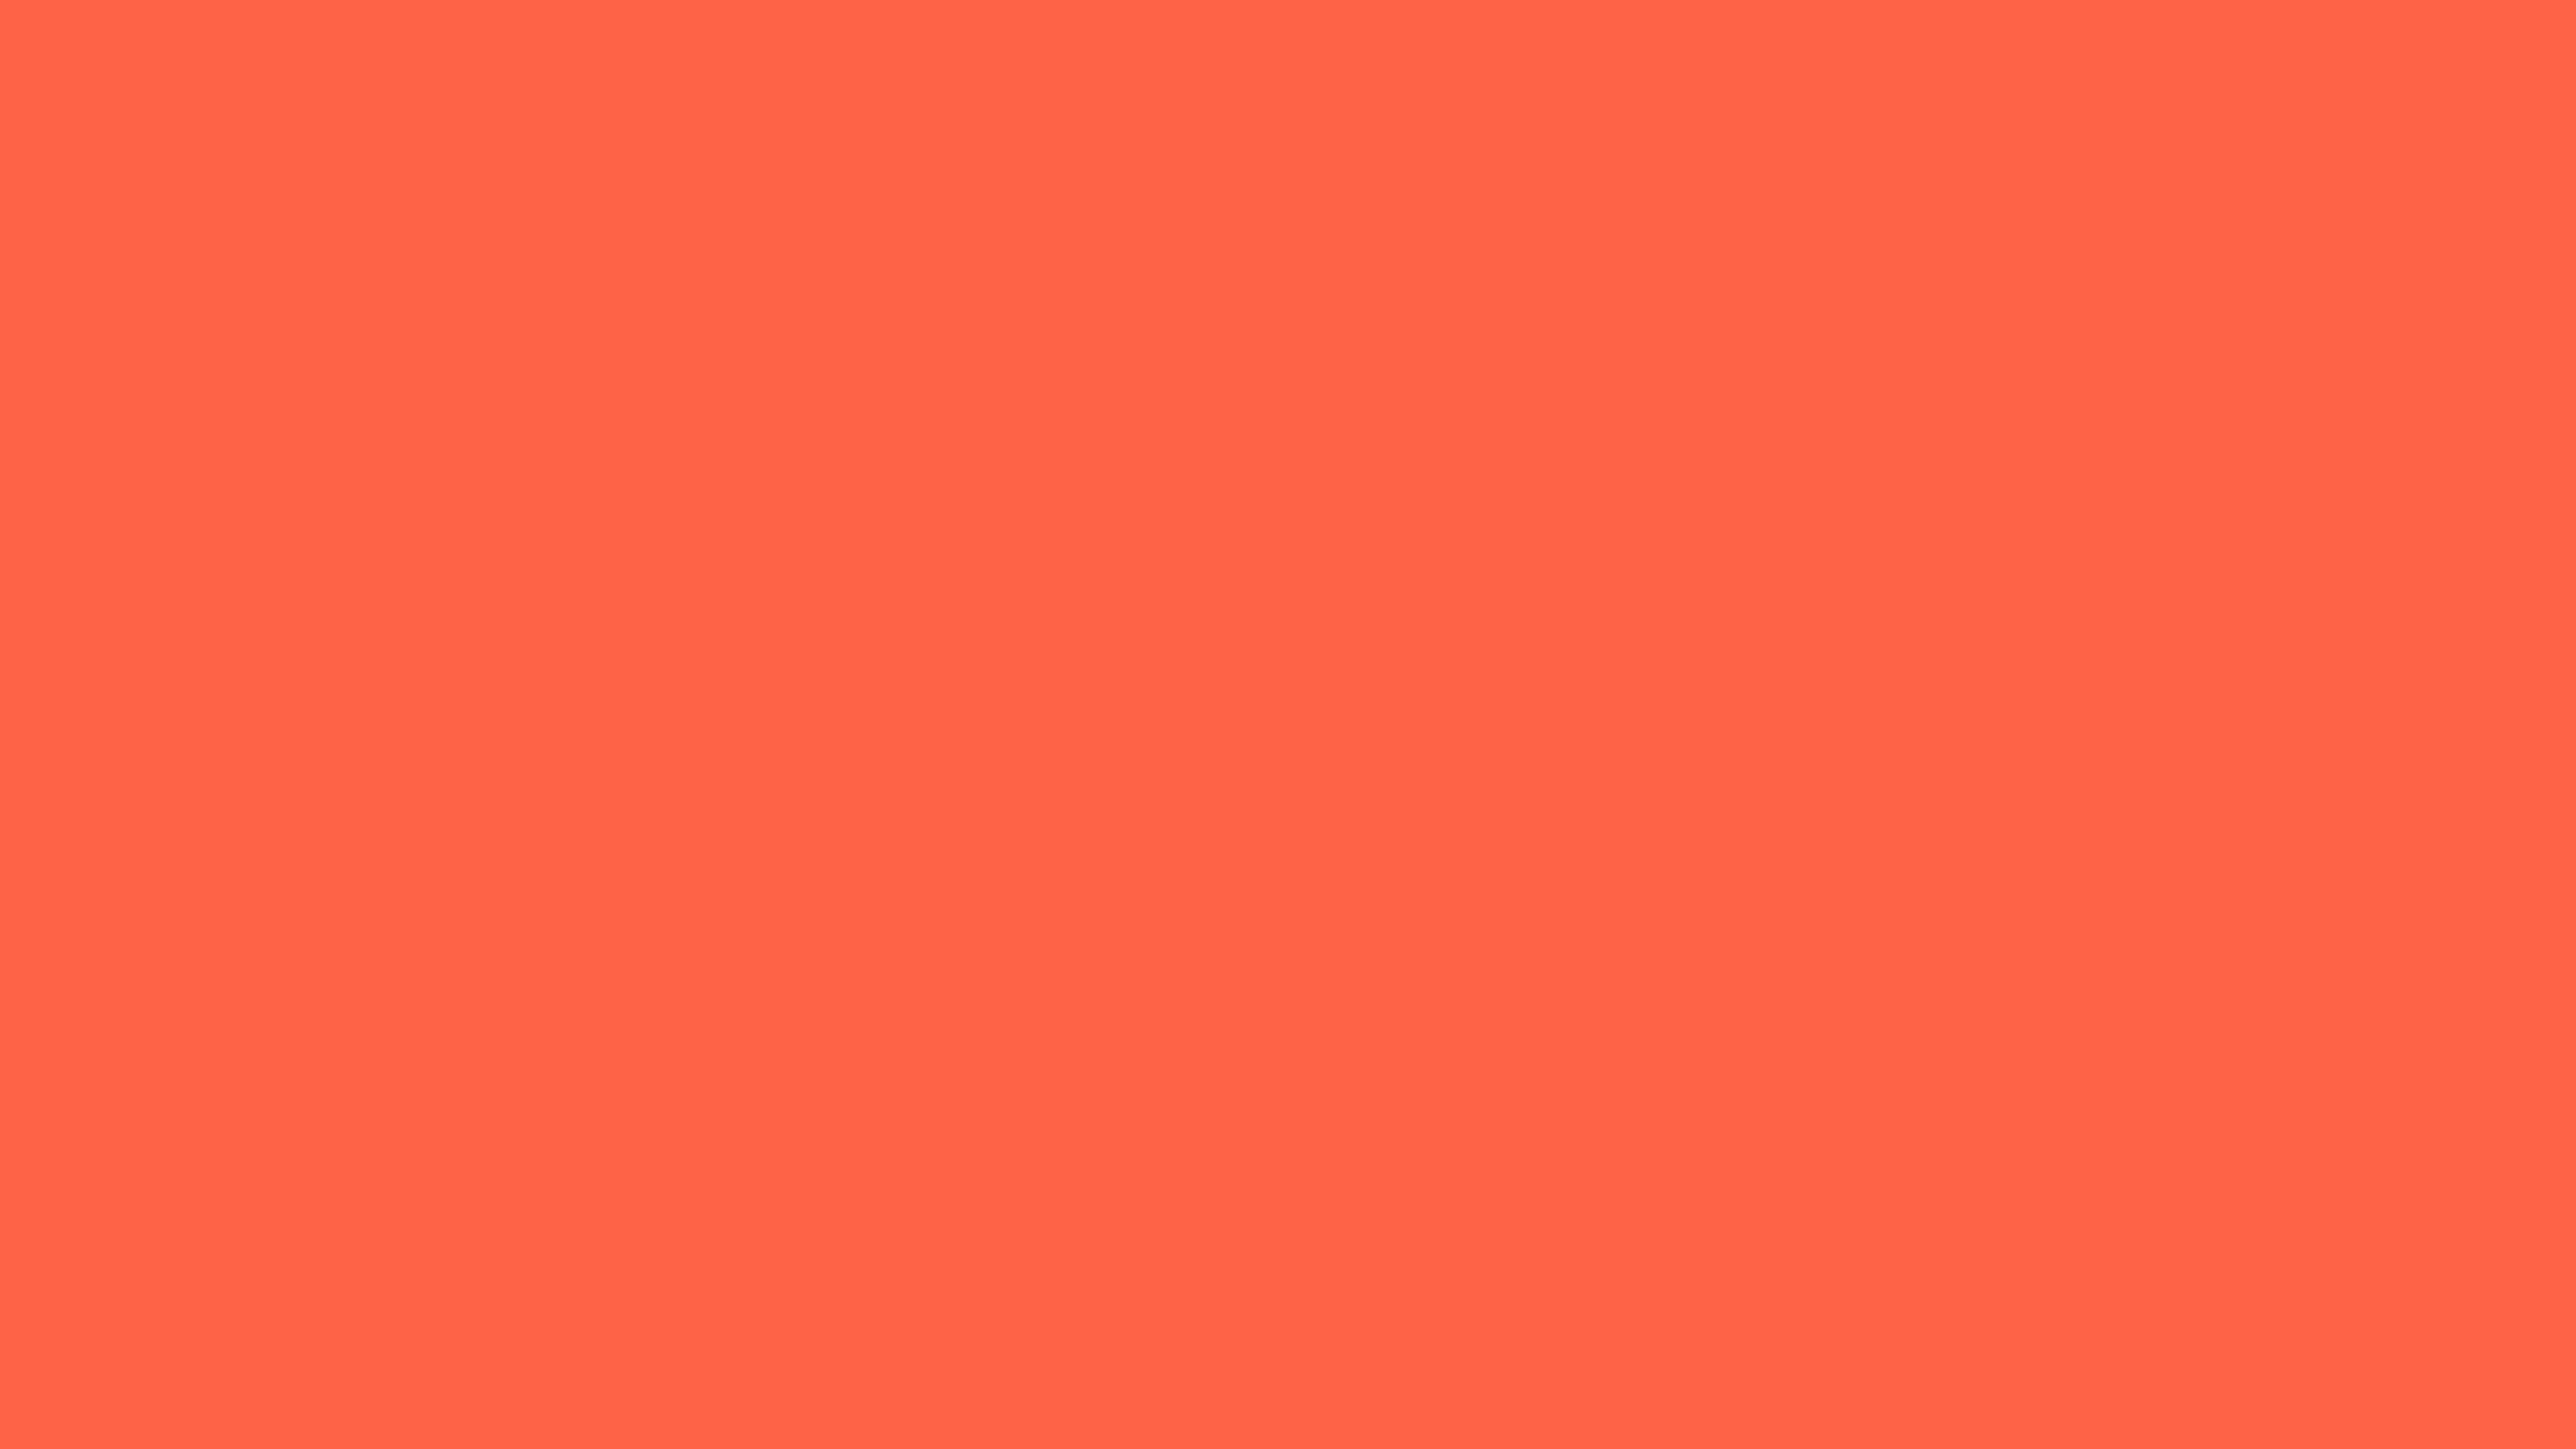 4096x2304 Tomato Solid Color Background